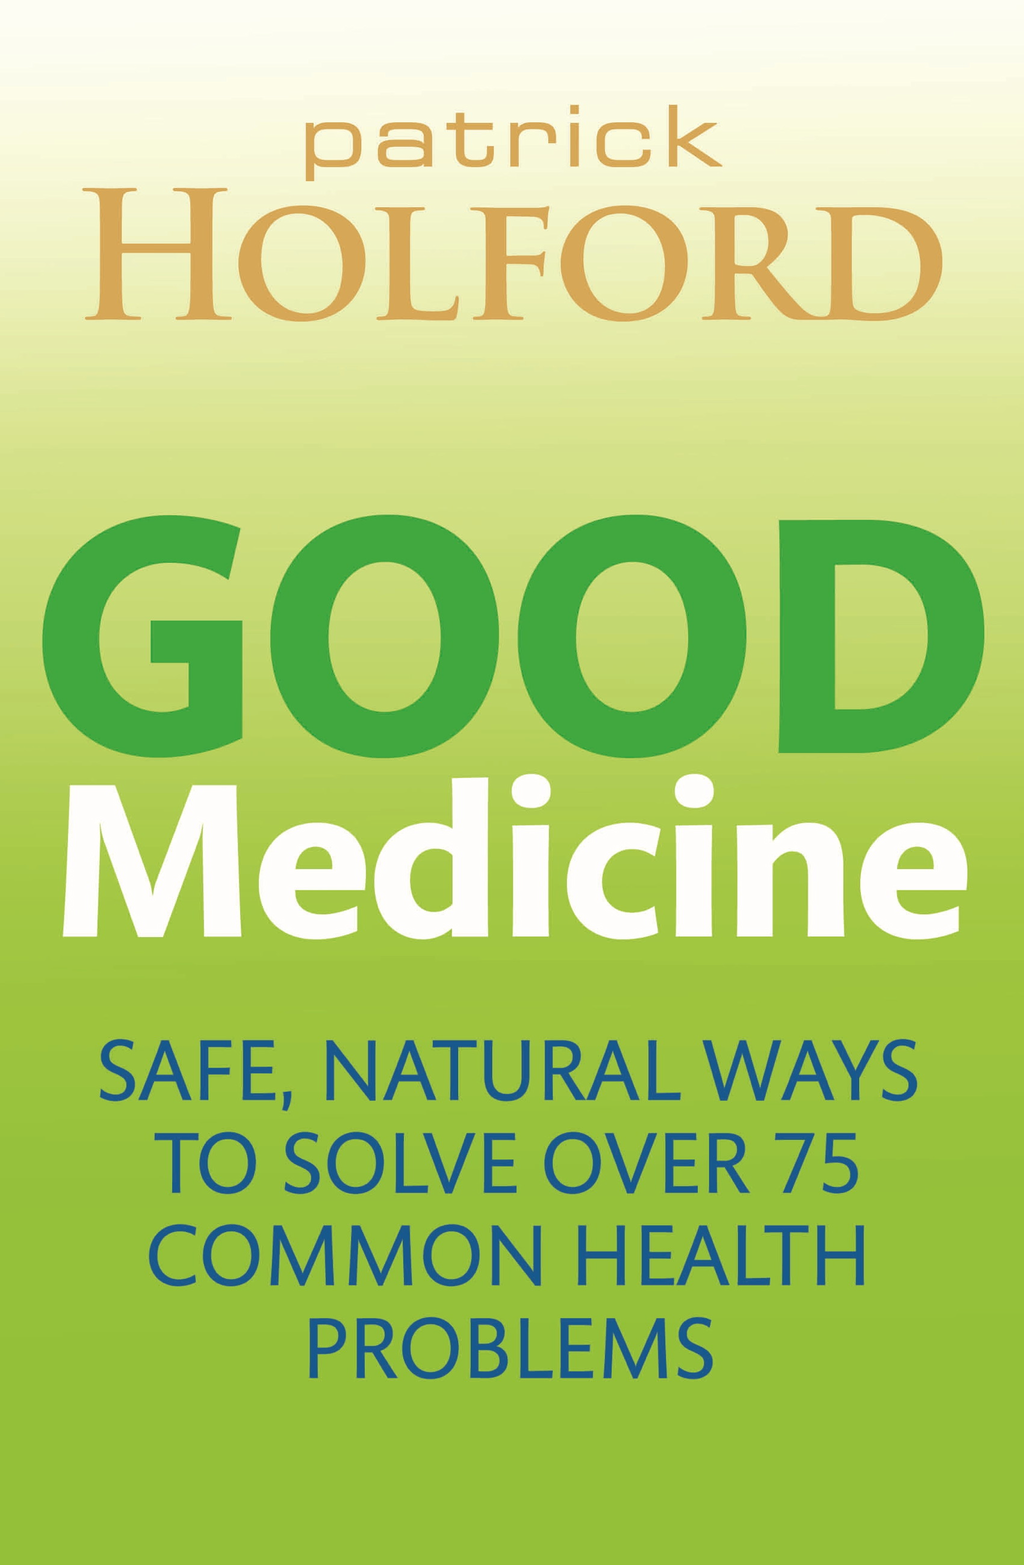 Good Medicine Safe,  natural ways to solve over 75 common health problems